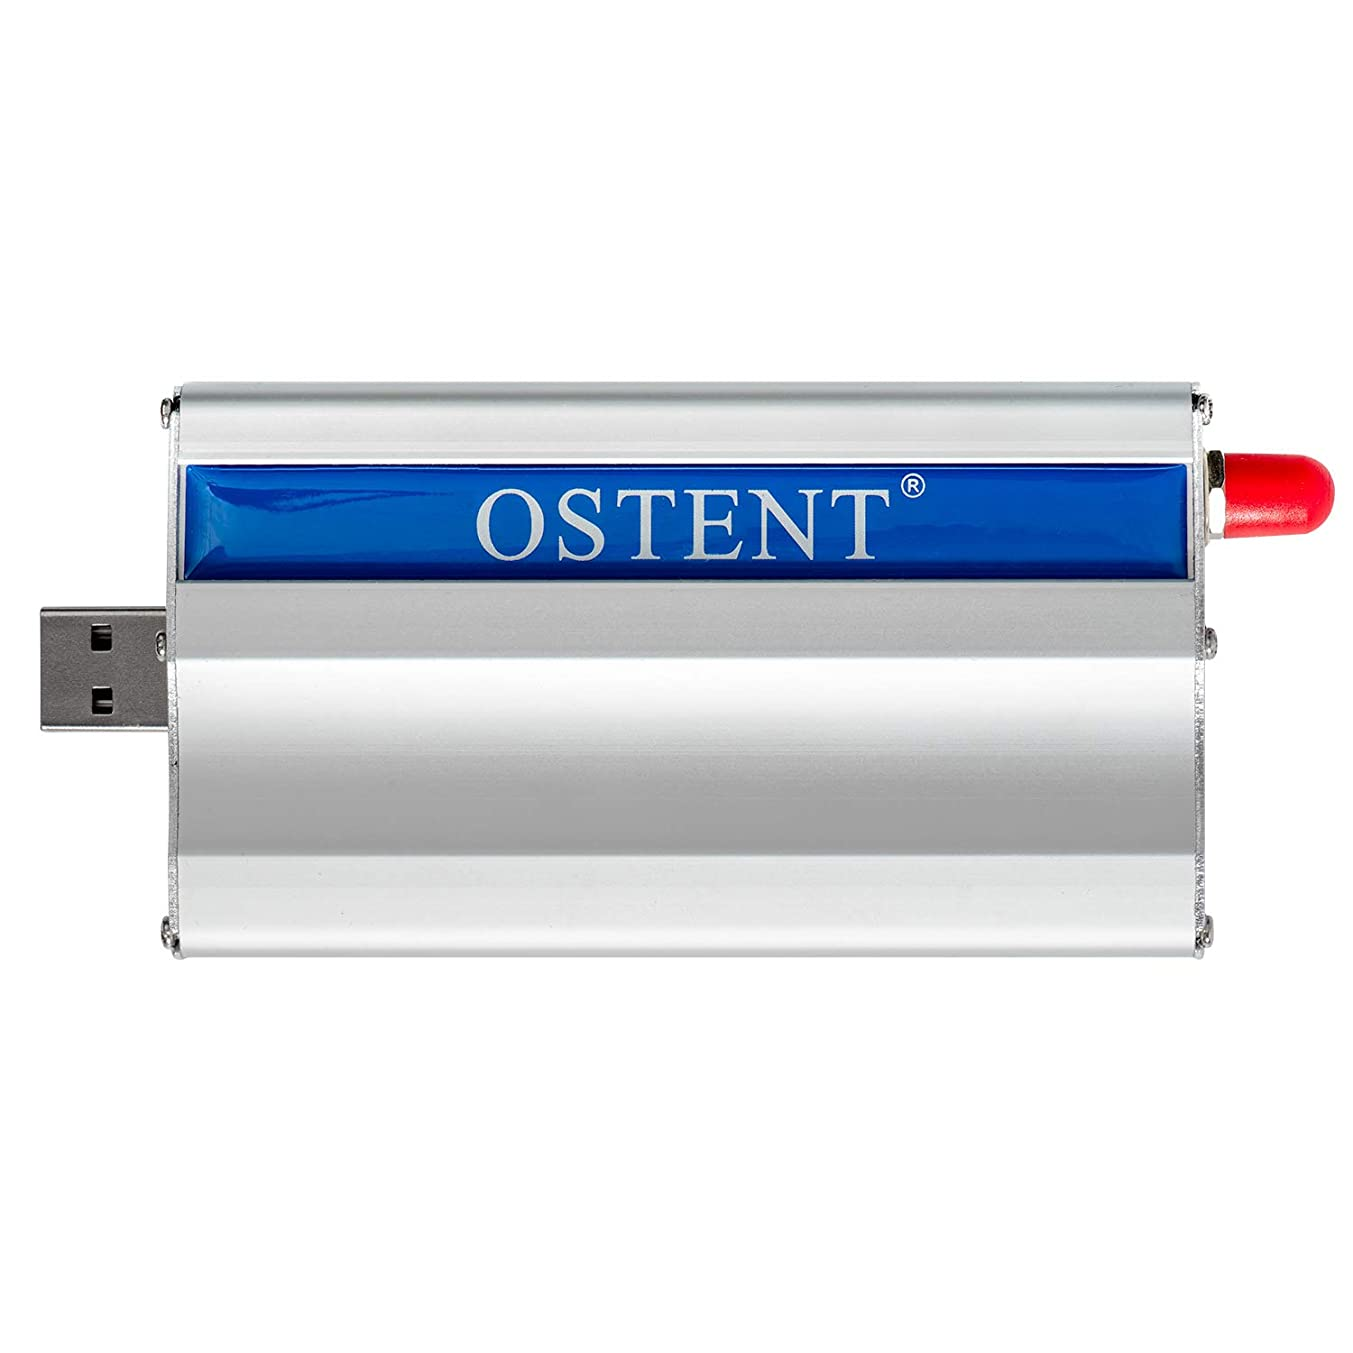 OSTENT Quad-Band GSM GPRS Edge Modem with Wavecom Q2687 Module USB Interface TCP/IP SMS MMS